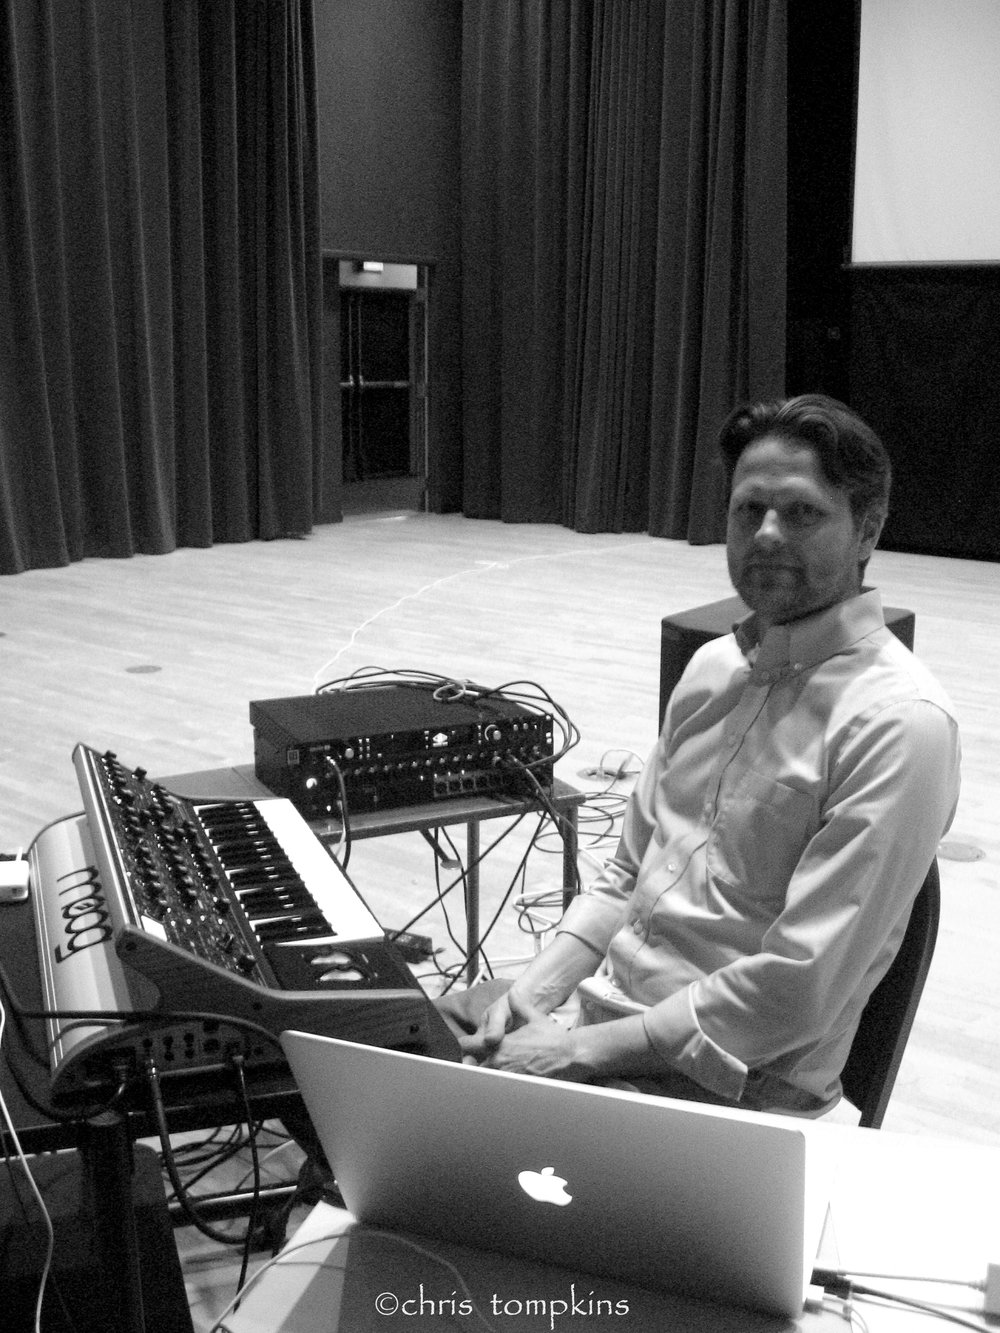 _ - Ben Sabey is a composer of chamber, orchestral and electronic music, lately specializing in analog synthesis and live computer interactivity in eight channels.